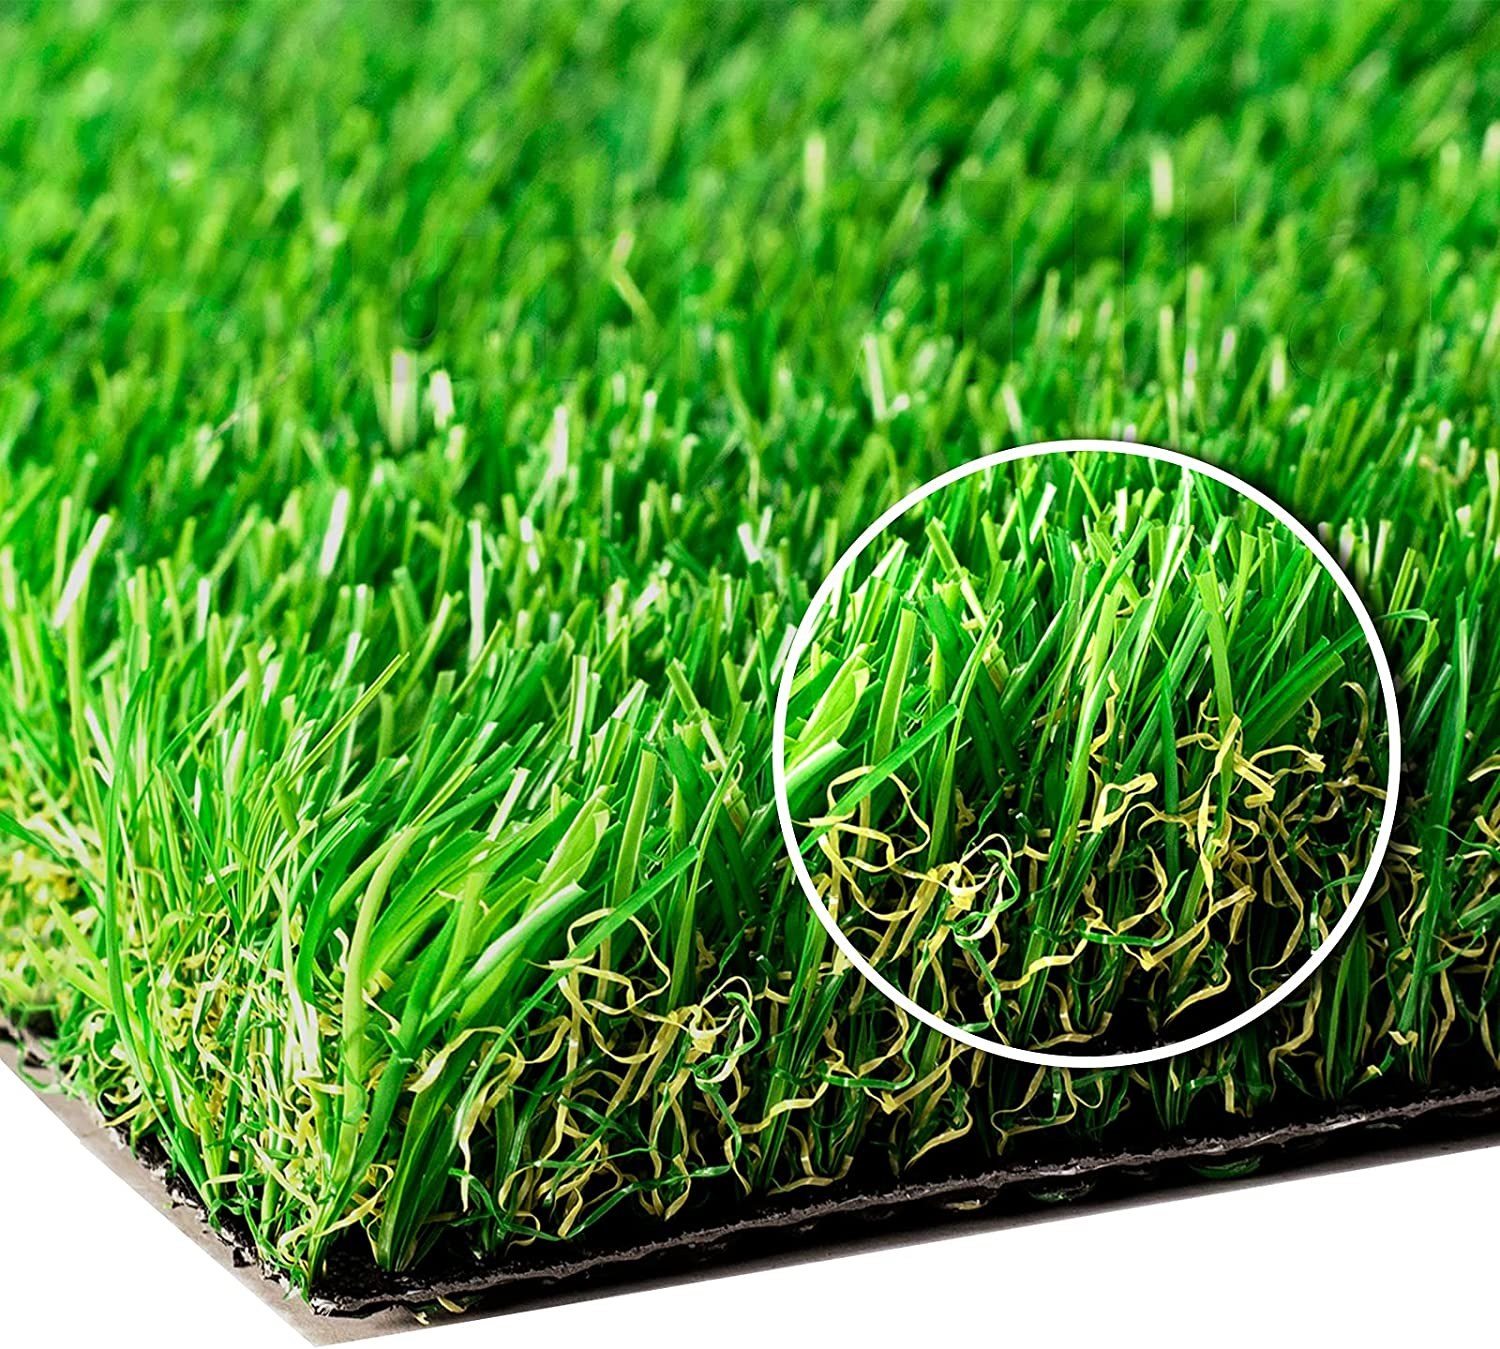 SunVilla Grass 1'X65' New Outlet sale feature products world's highest quality popular Artificial Sizeã 【Custom Realistic